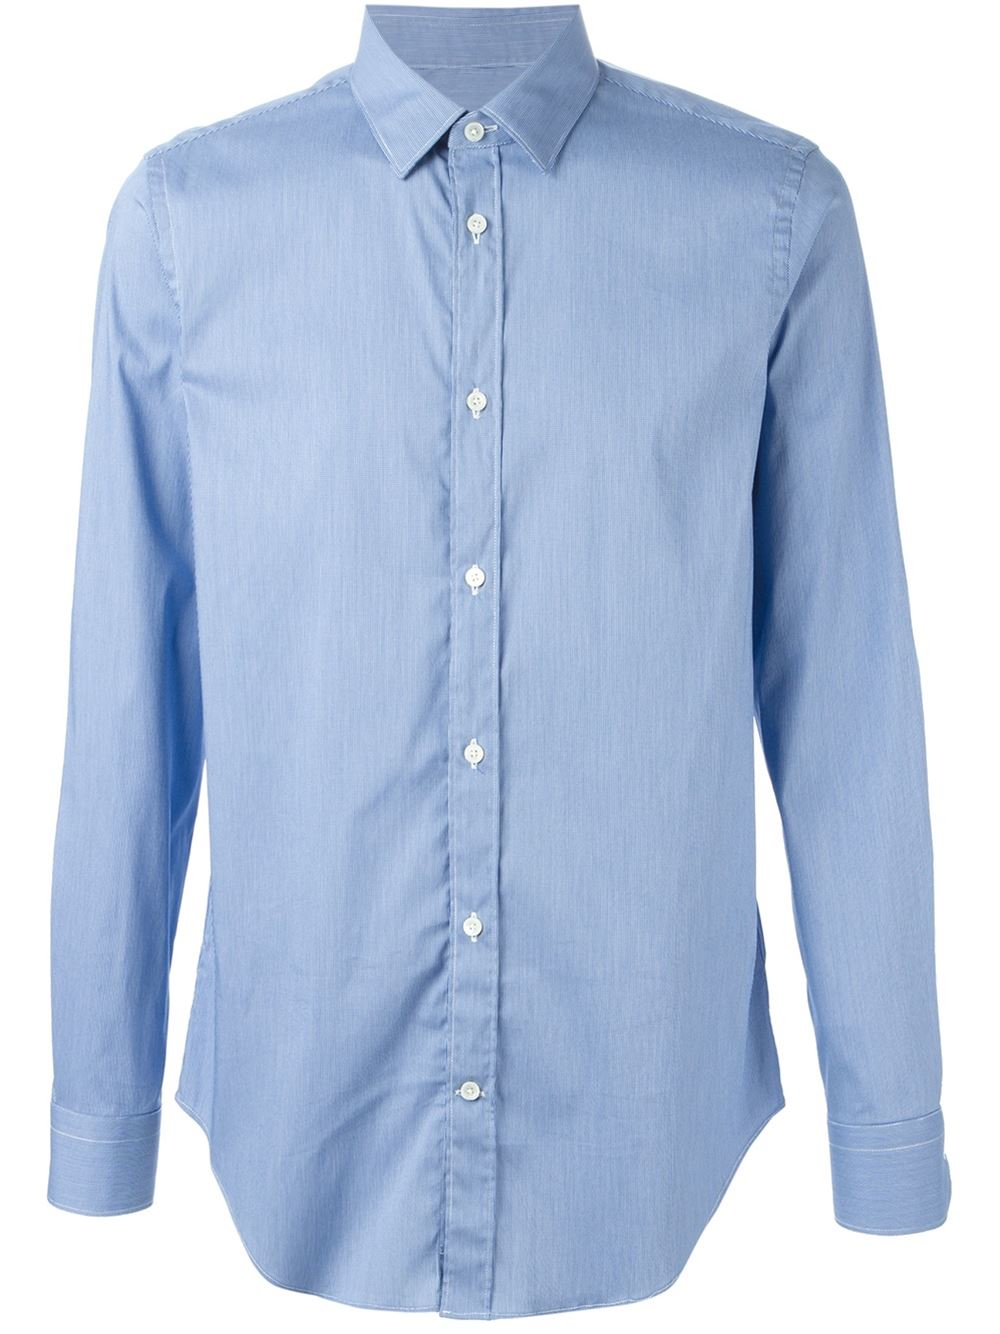 Mauro Grifoni Classic Button Down Shirt In Blue For Men Lyst